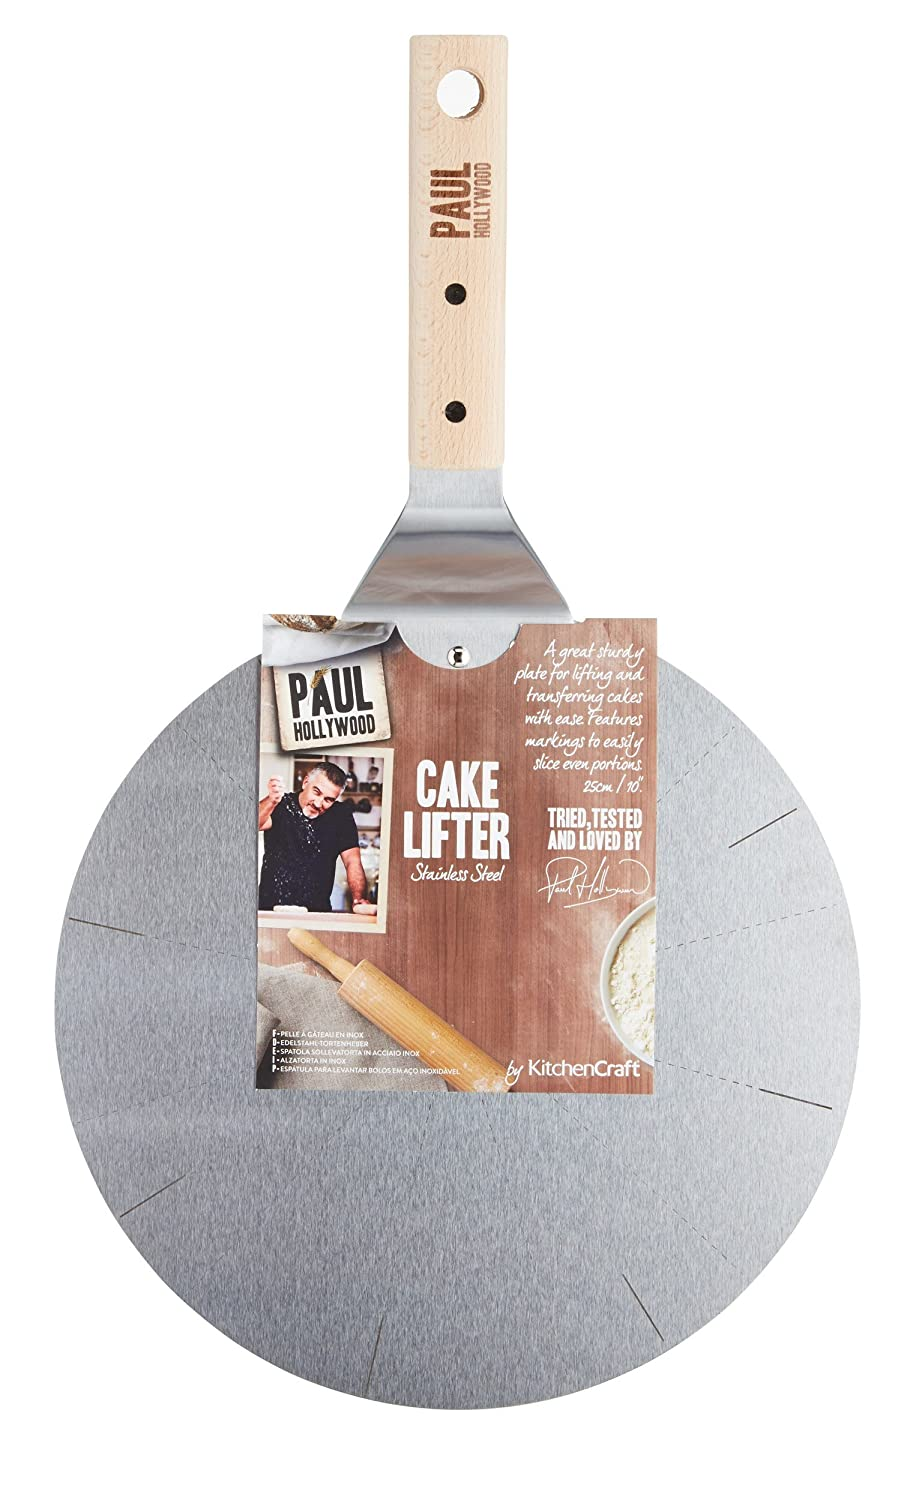 25 cm 10 KitchenCraft Paul Hollywood Stainless Steel Cake Lifter with Cutting Guide